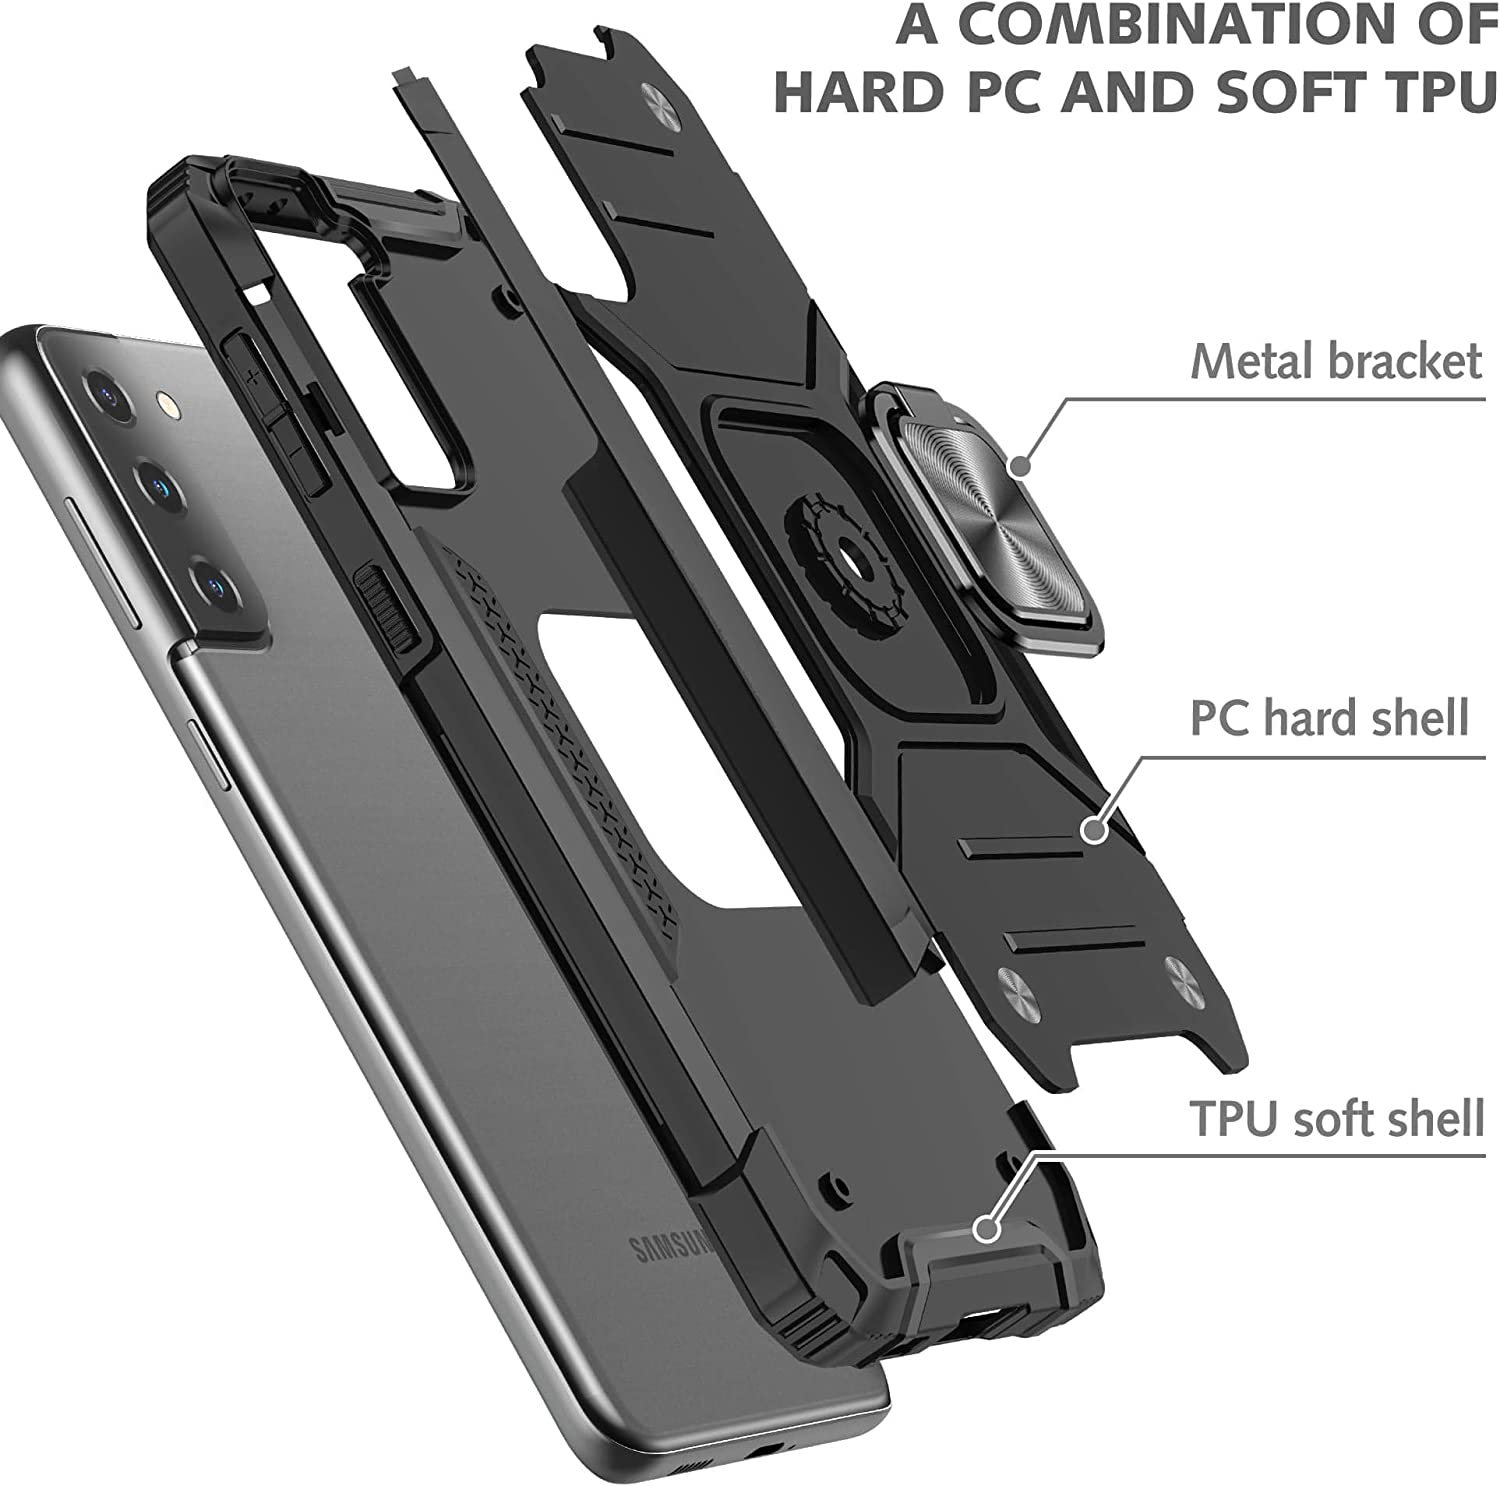 S21 6.2 Inches S21 Case Kickstand Cases with Metal Back for Magnetic Car Mount Shockproof Anti-Drop Phone Case Compatible with Samsung Galaxy S21 Black